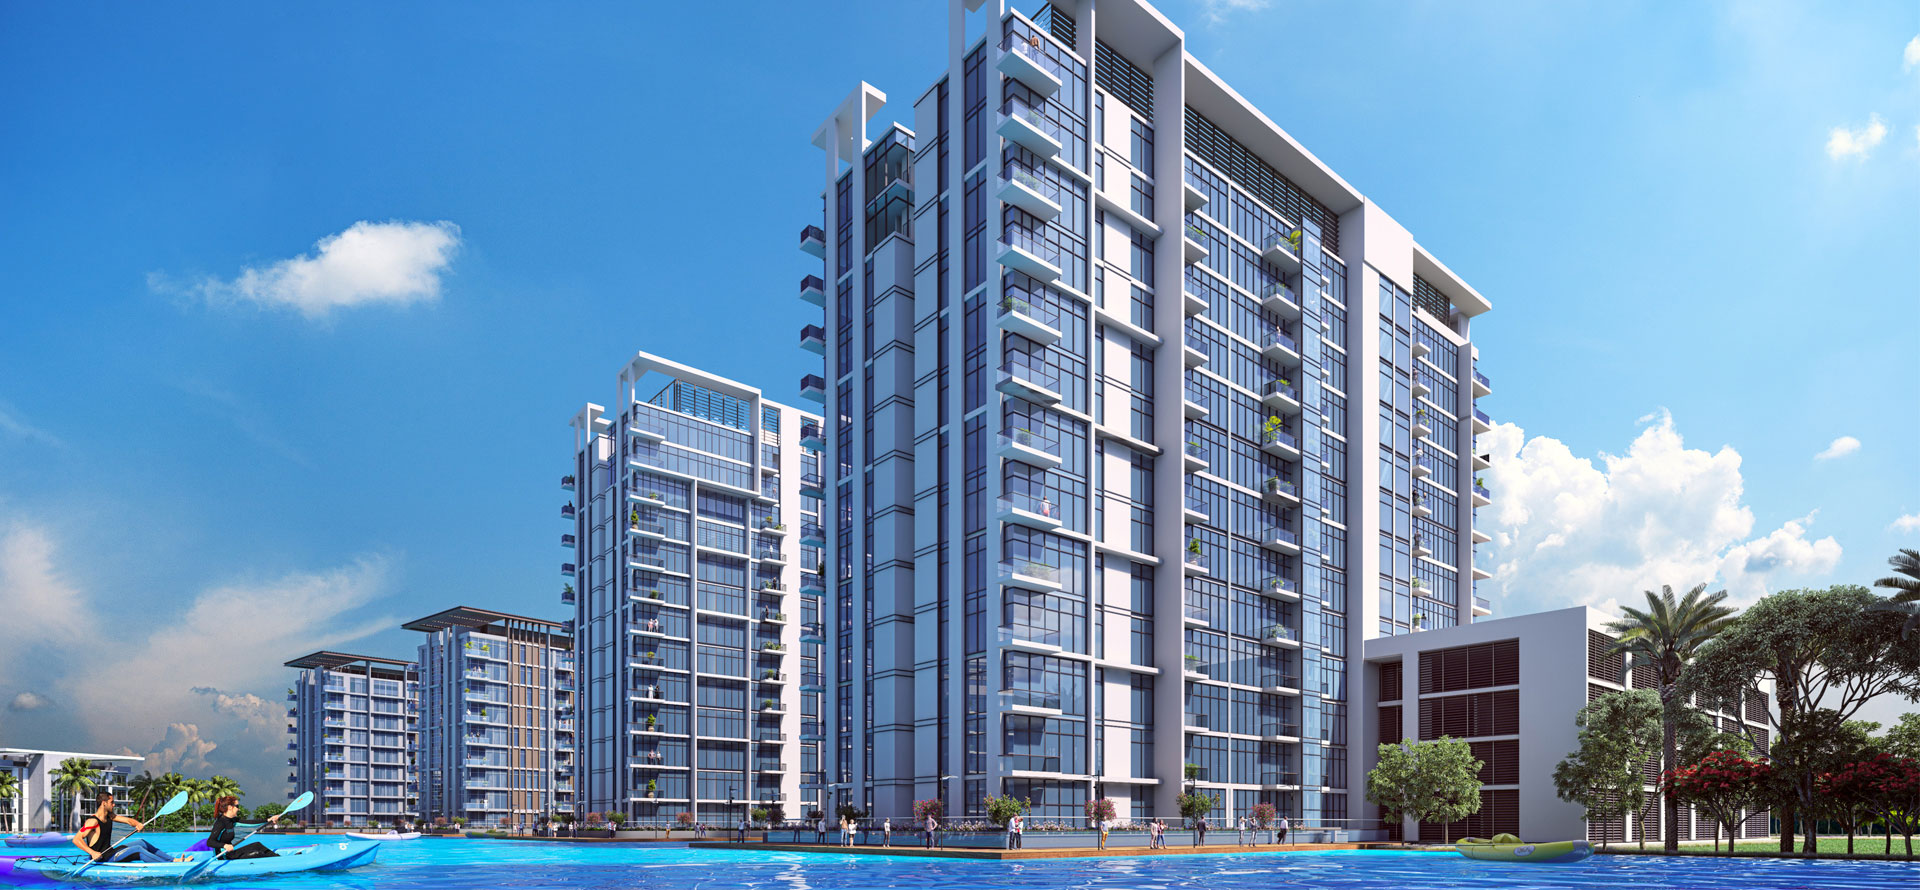 Residences in Meydan District One